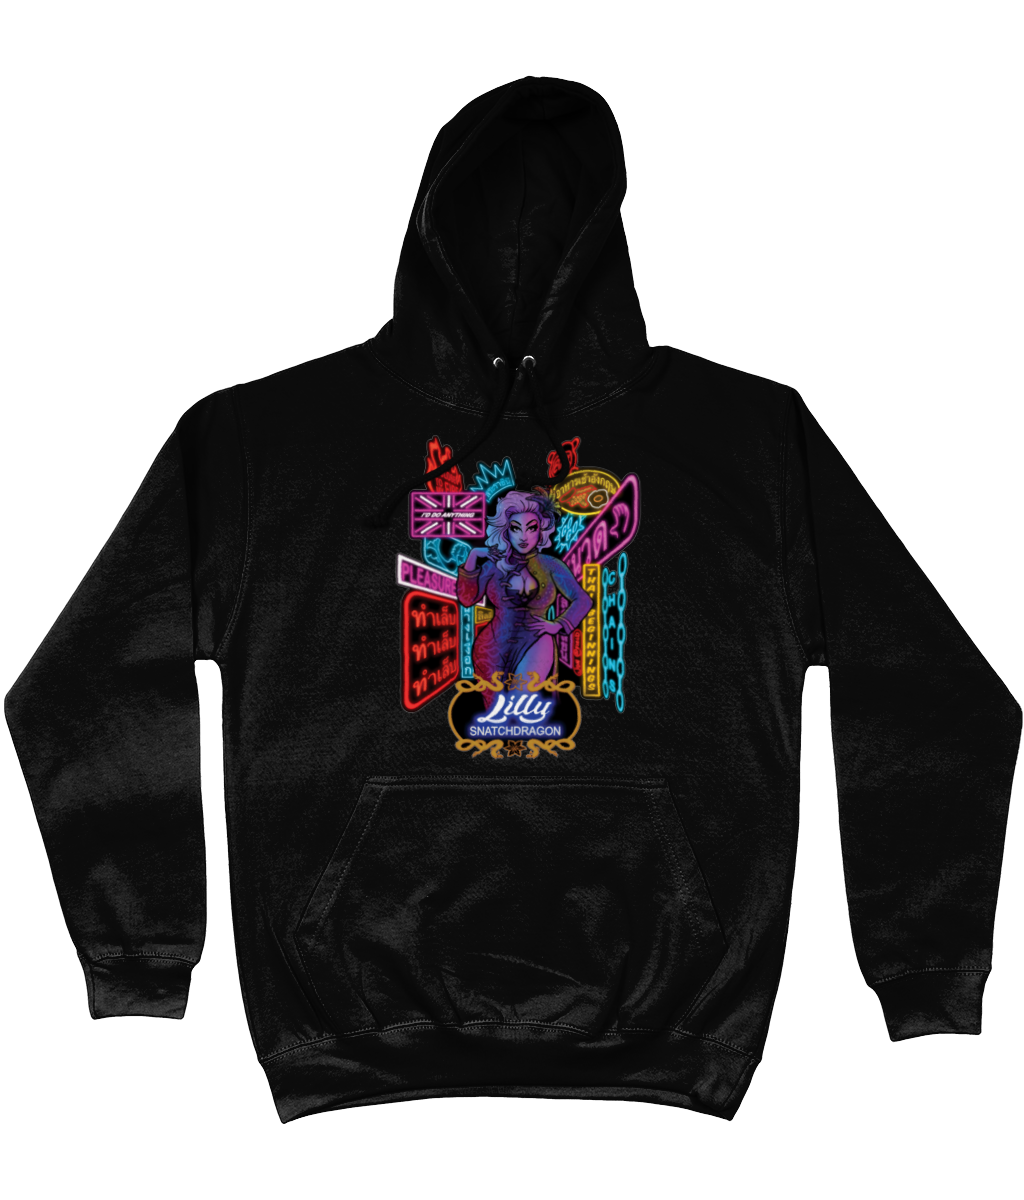 LILLY SNATCHDRAGON - Official Merch - Hoodie